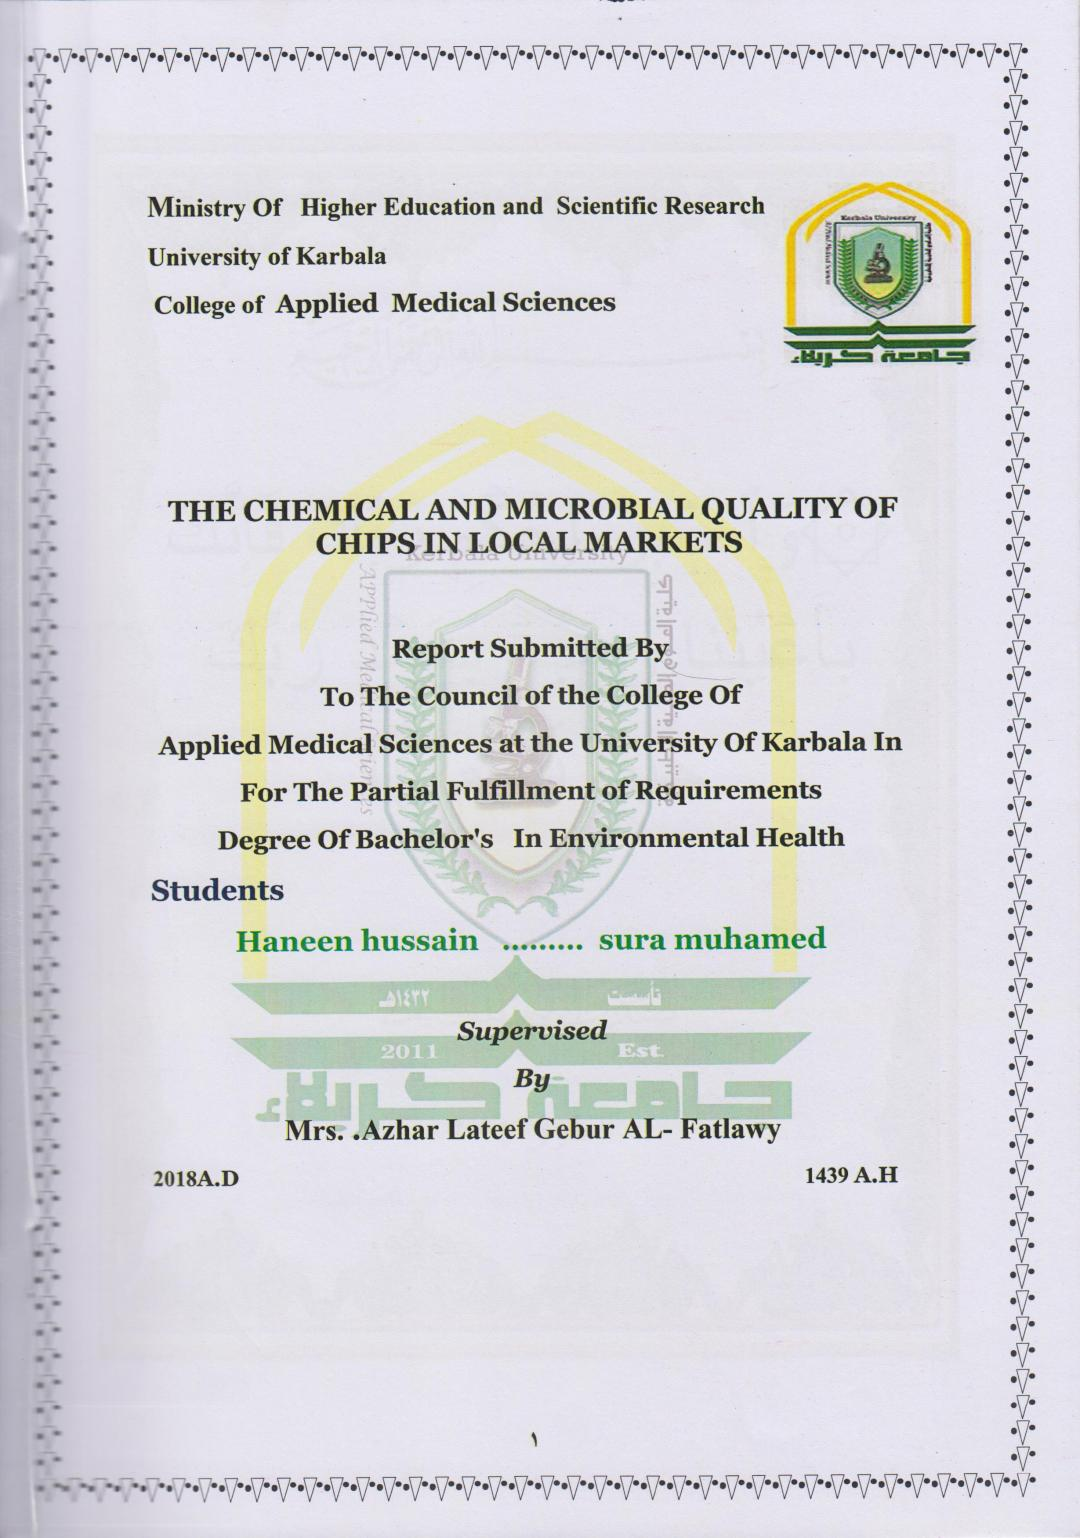 The Chemical and Microbial